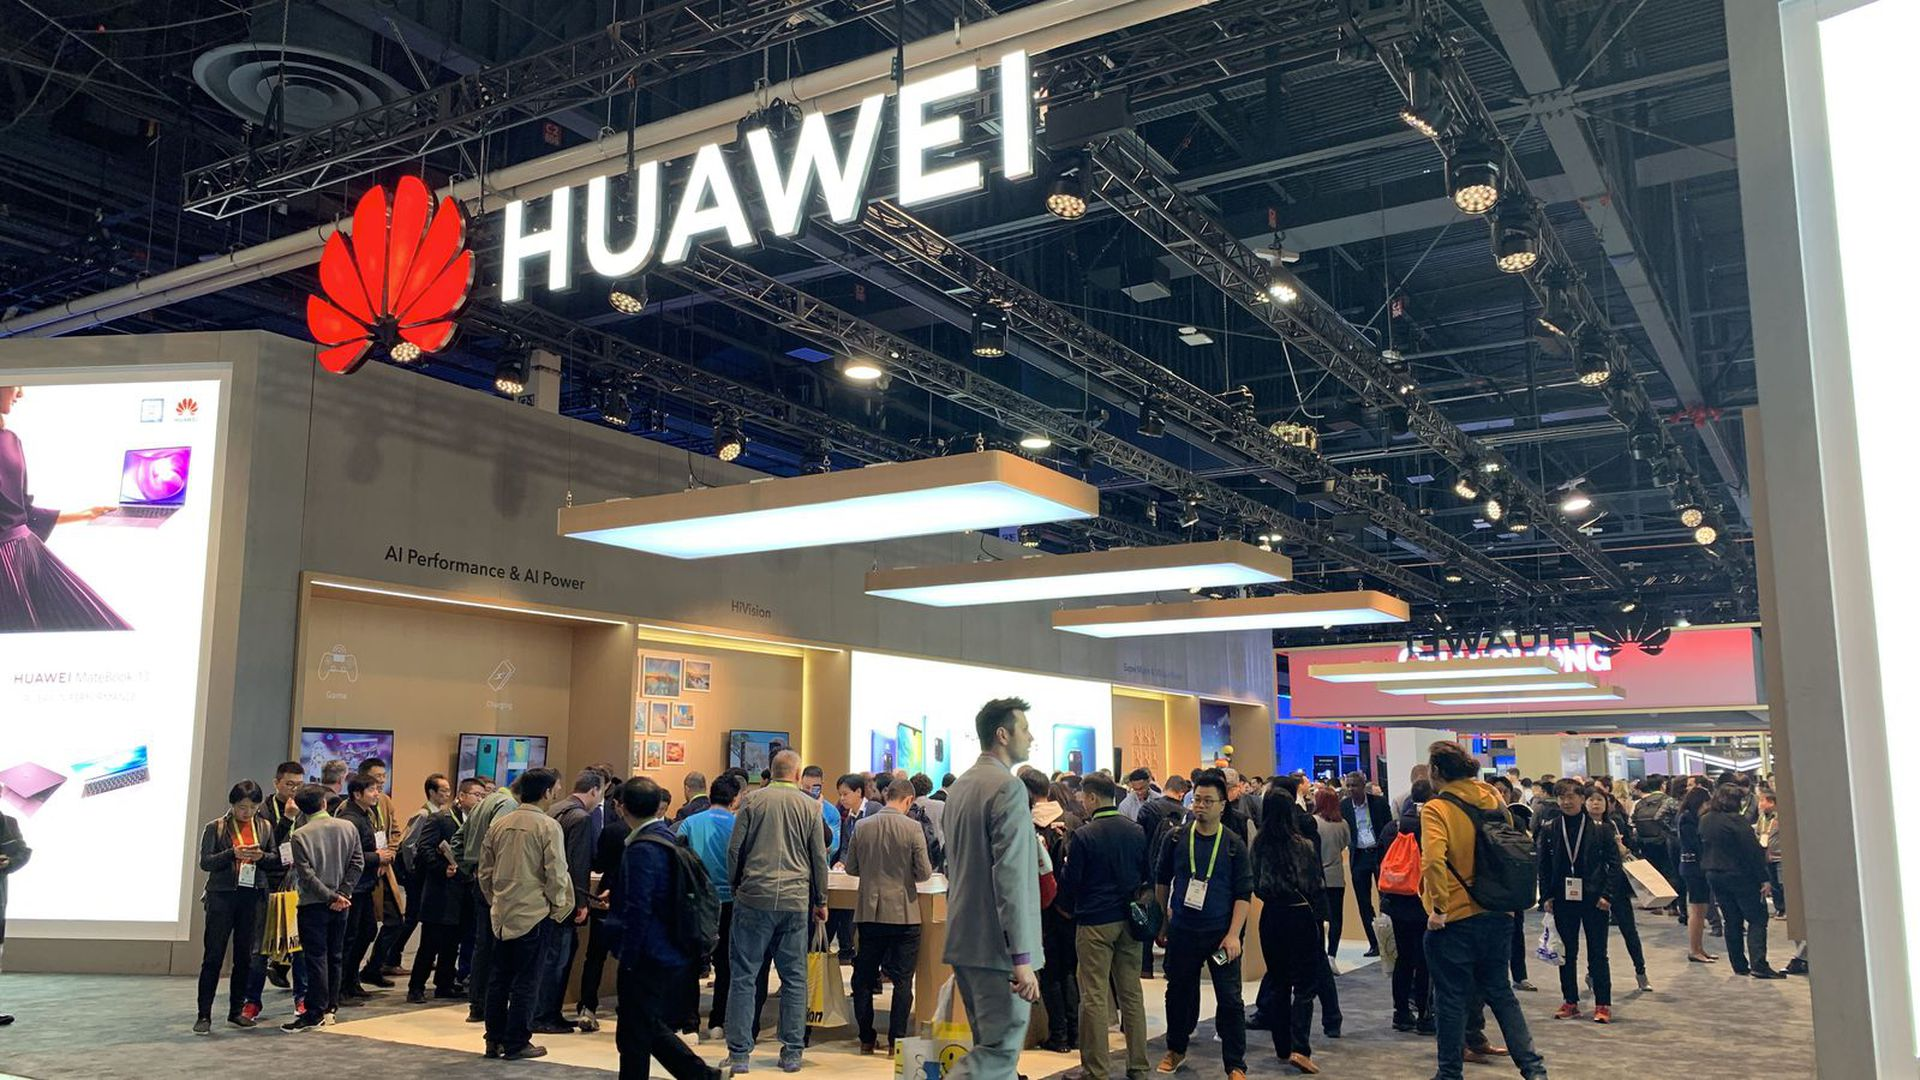 Huawei's booth at CES 2019